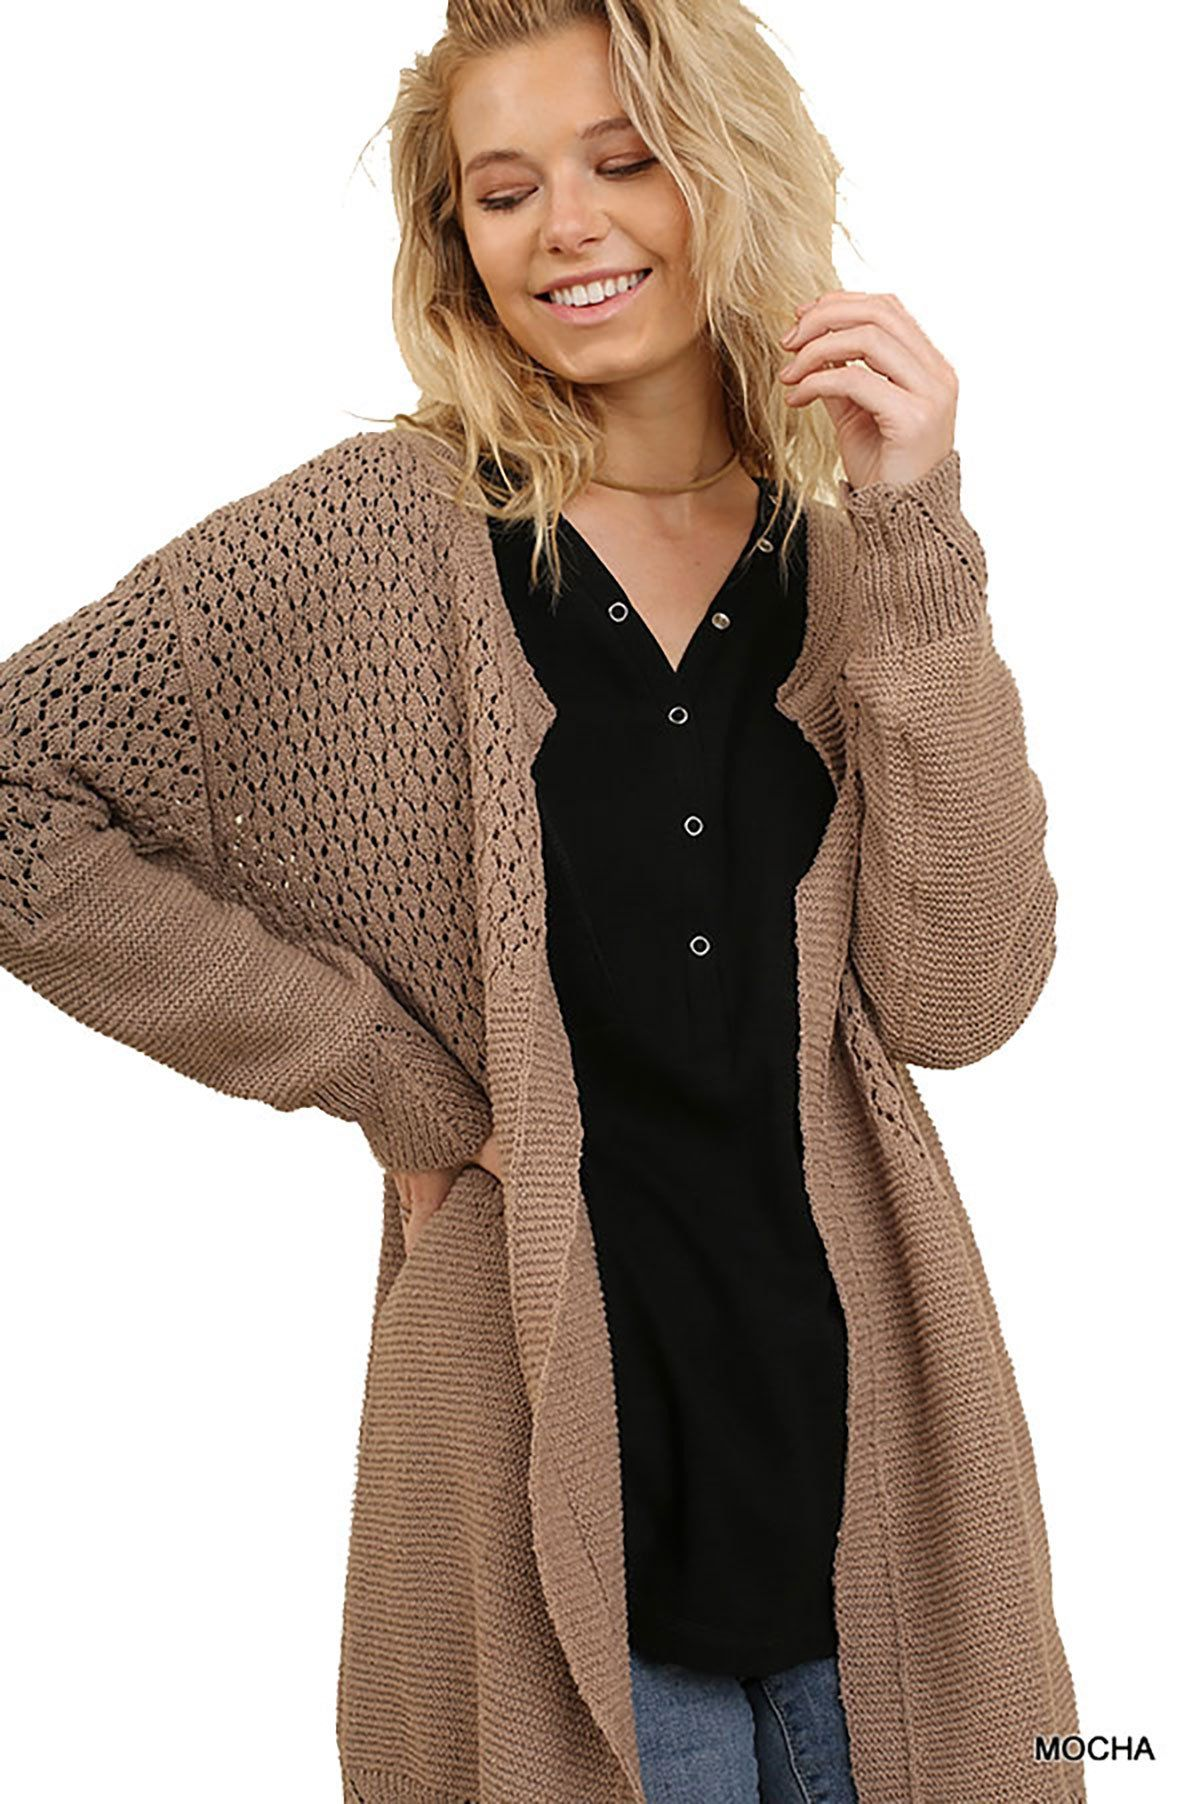 aec93e89e1 Umgee Open Front Light Sweater cardigans